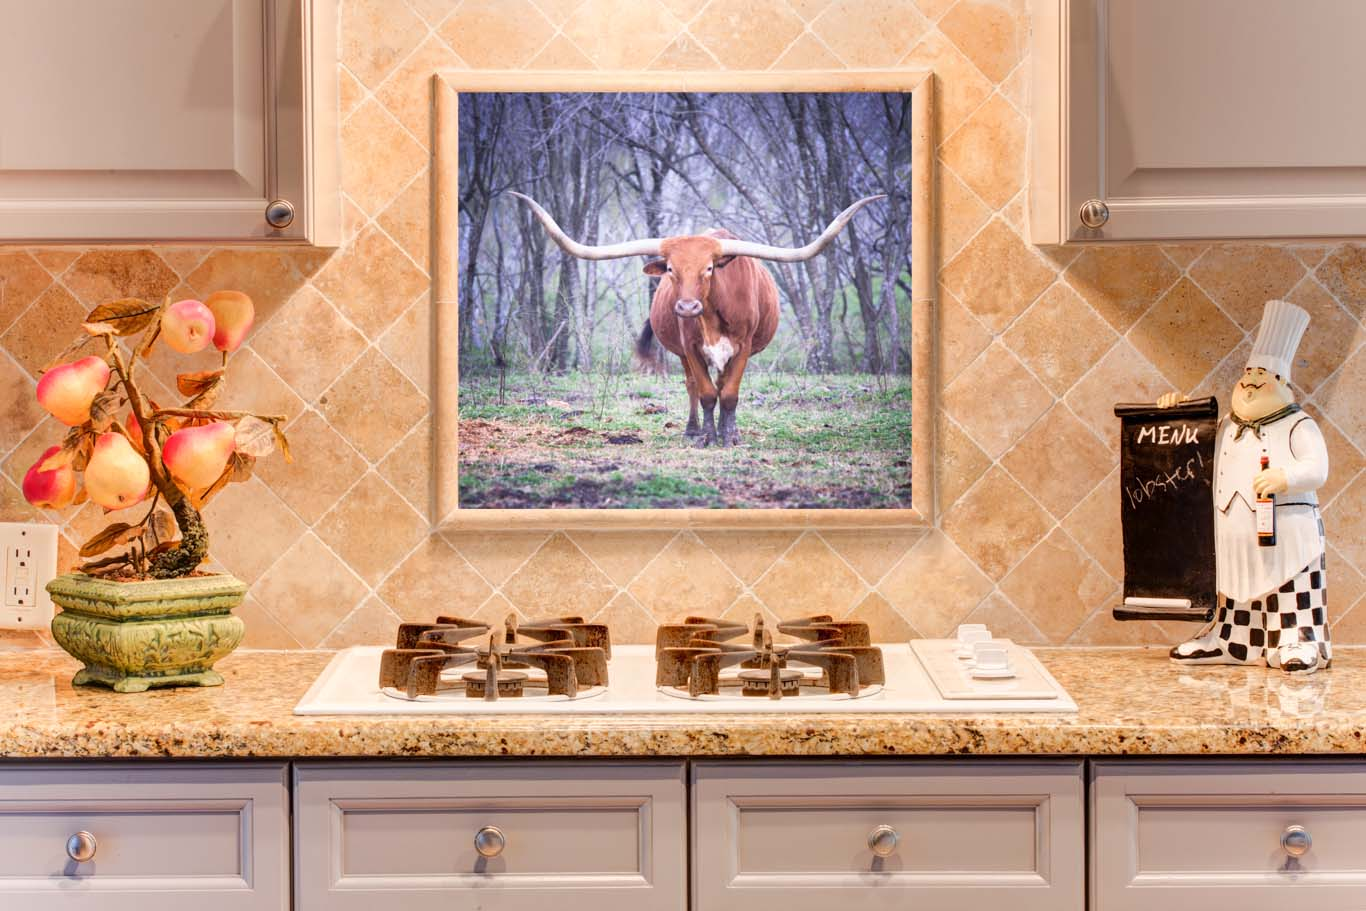 Digital Printed Glass Picture of a longhorn over a stove as a backsplash highlight